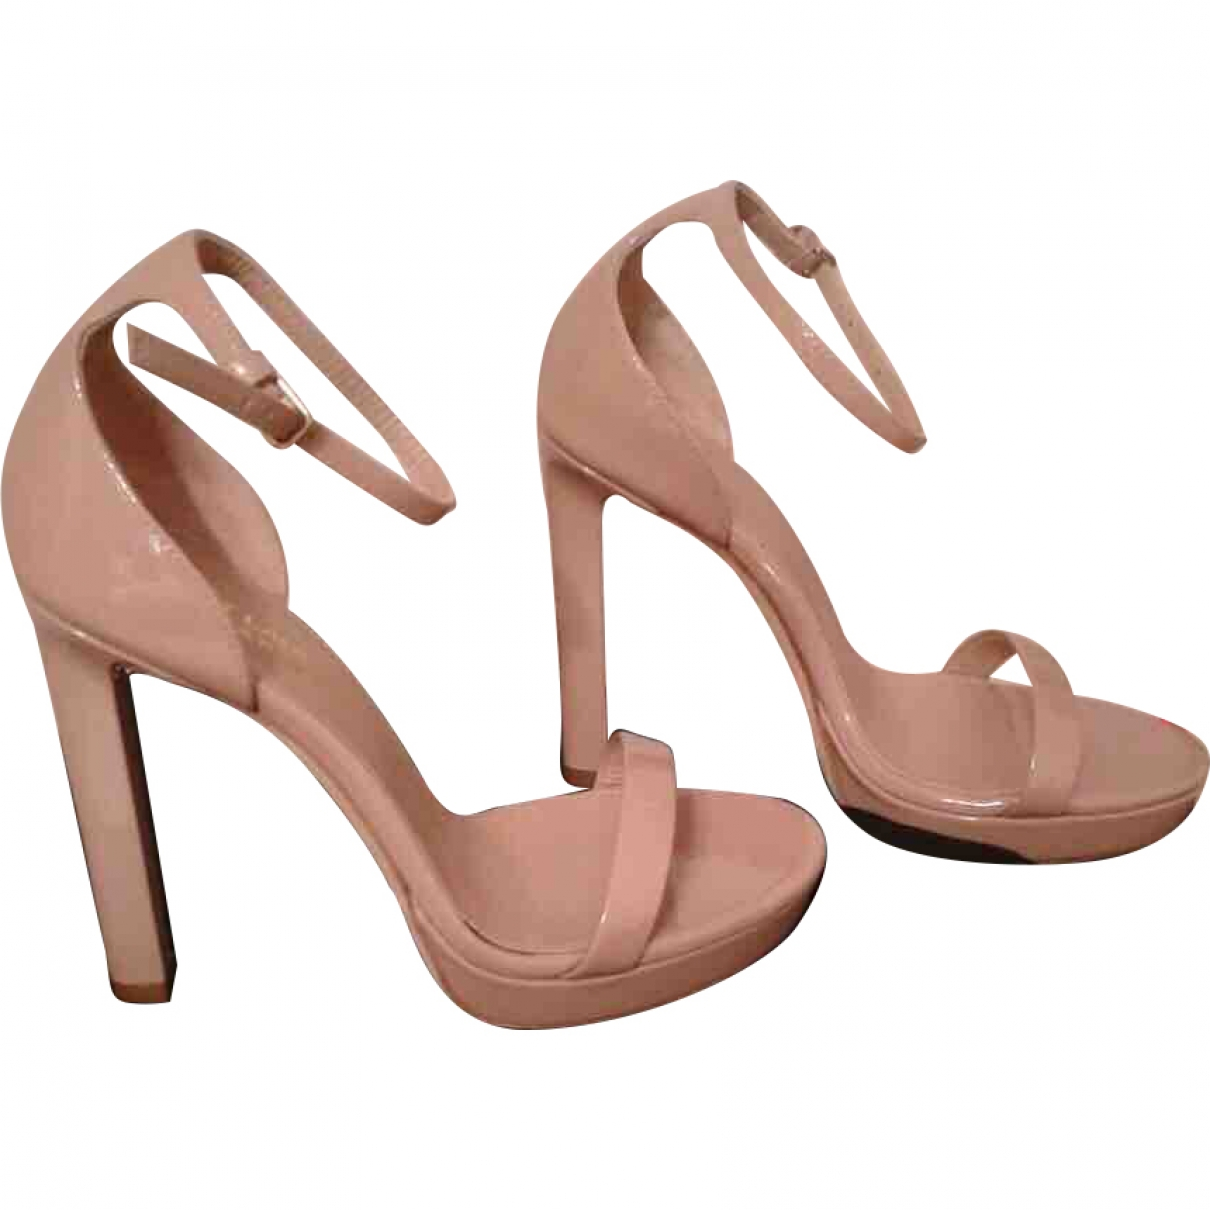 Saint Laurent Hall Beige Patent leather Sandals for Women 38 EU